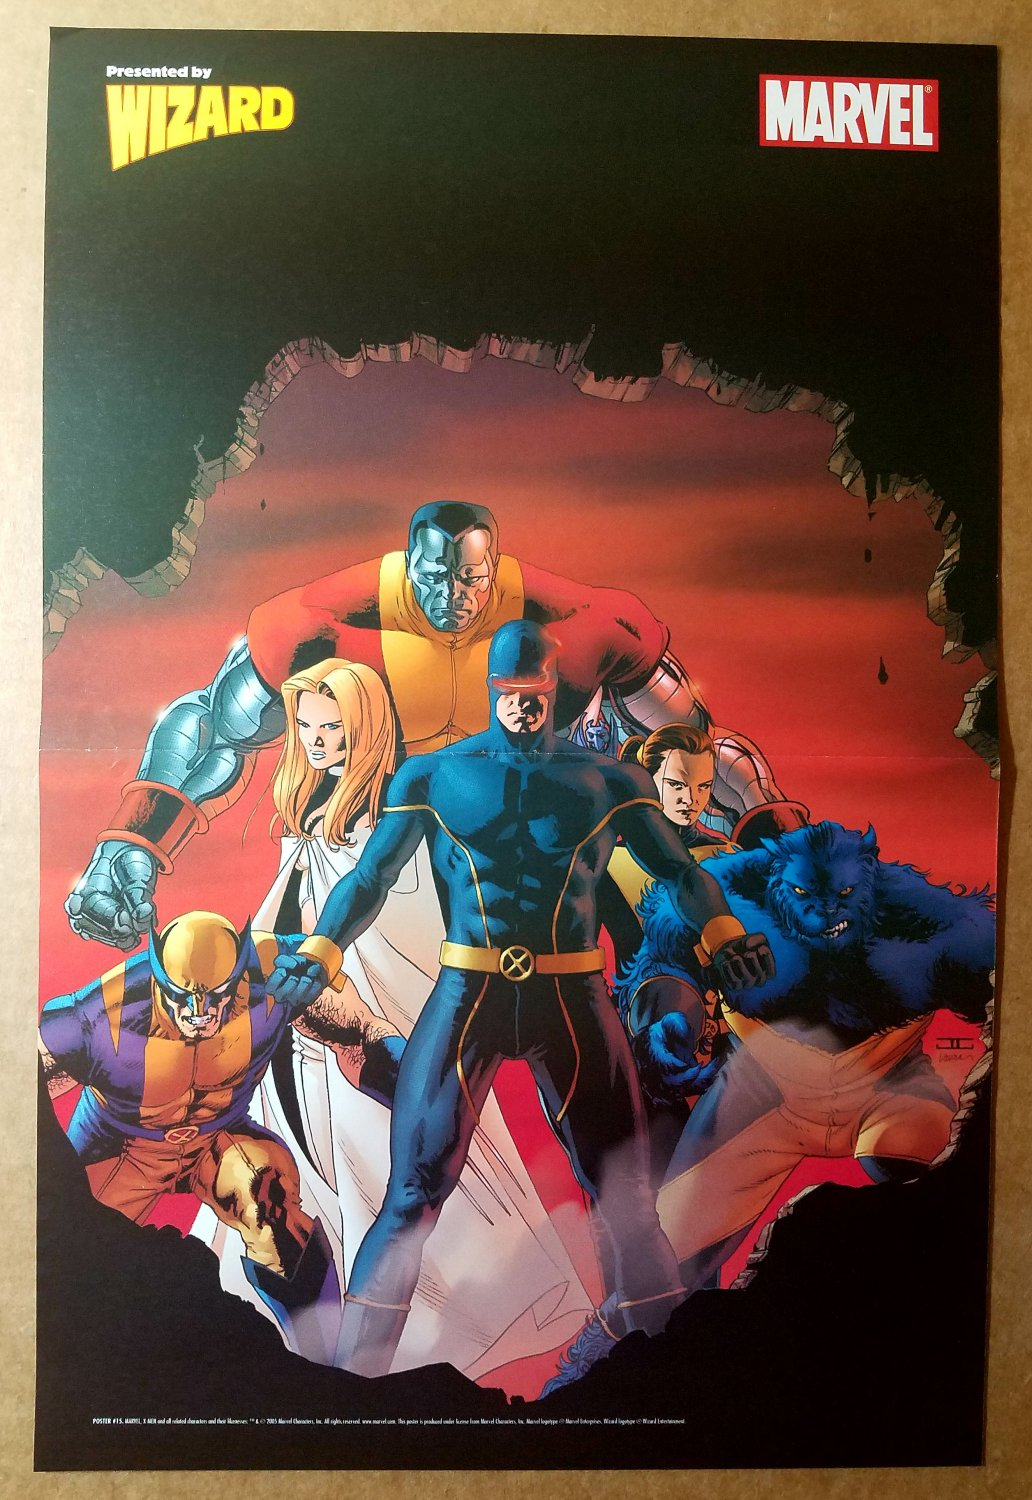 Astonishing X-Men Marvel Comics Poster by John Cassaday